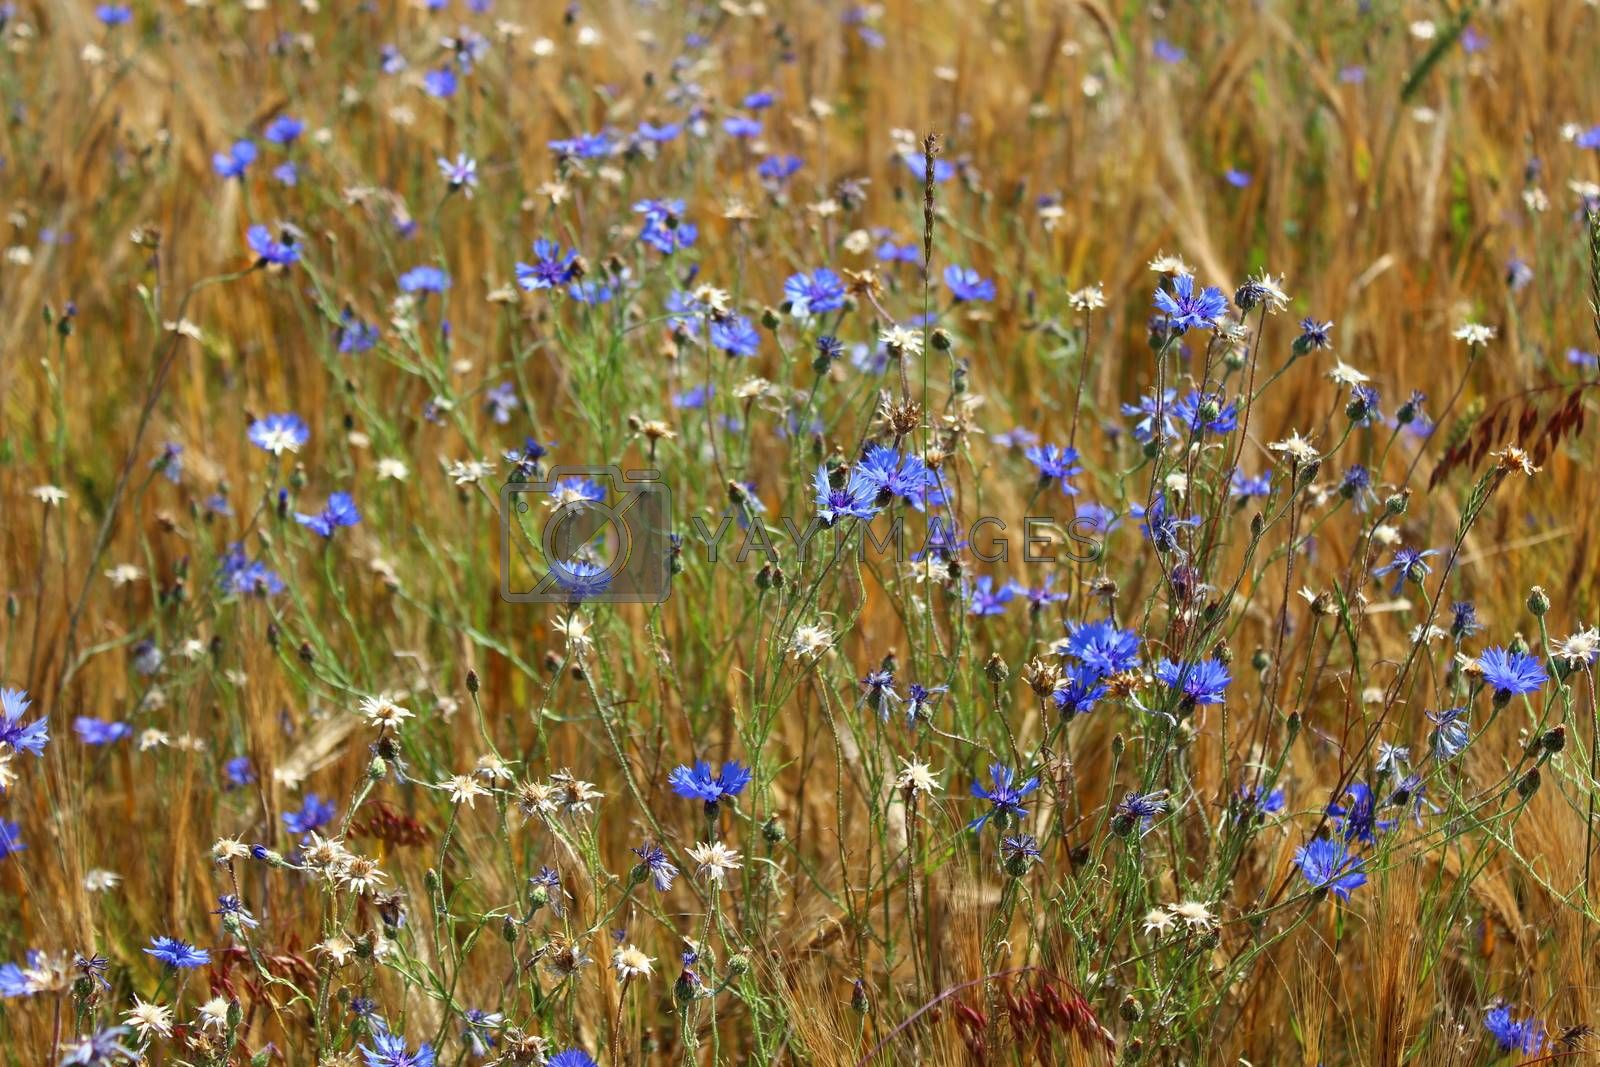 Royalty free image of many cornflowers in a field by martina_unbehauen